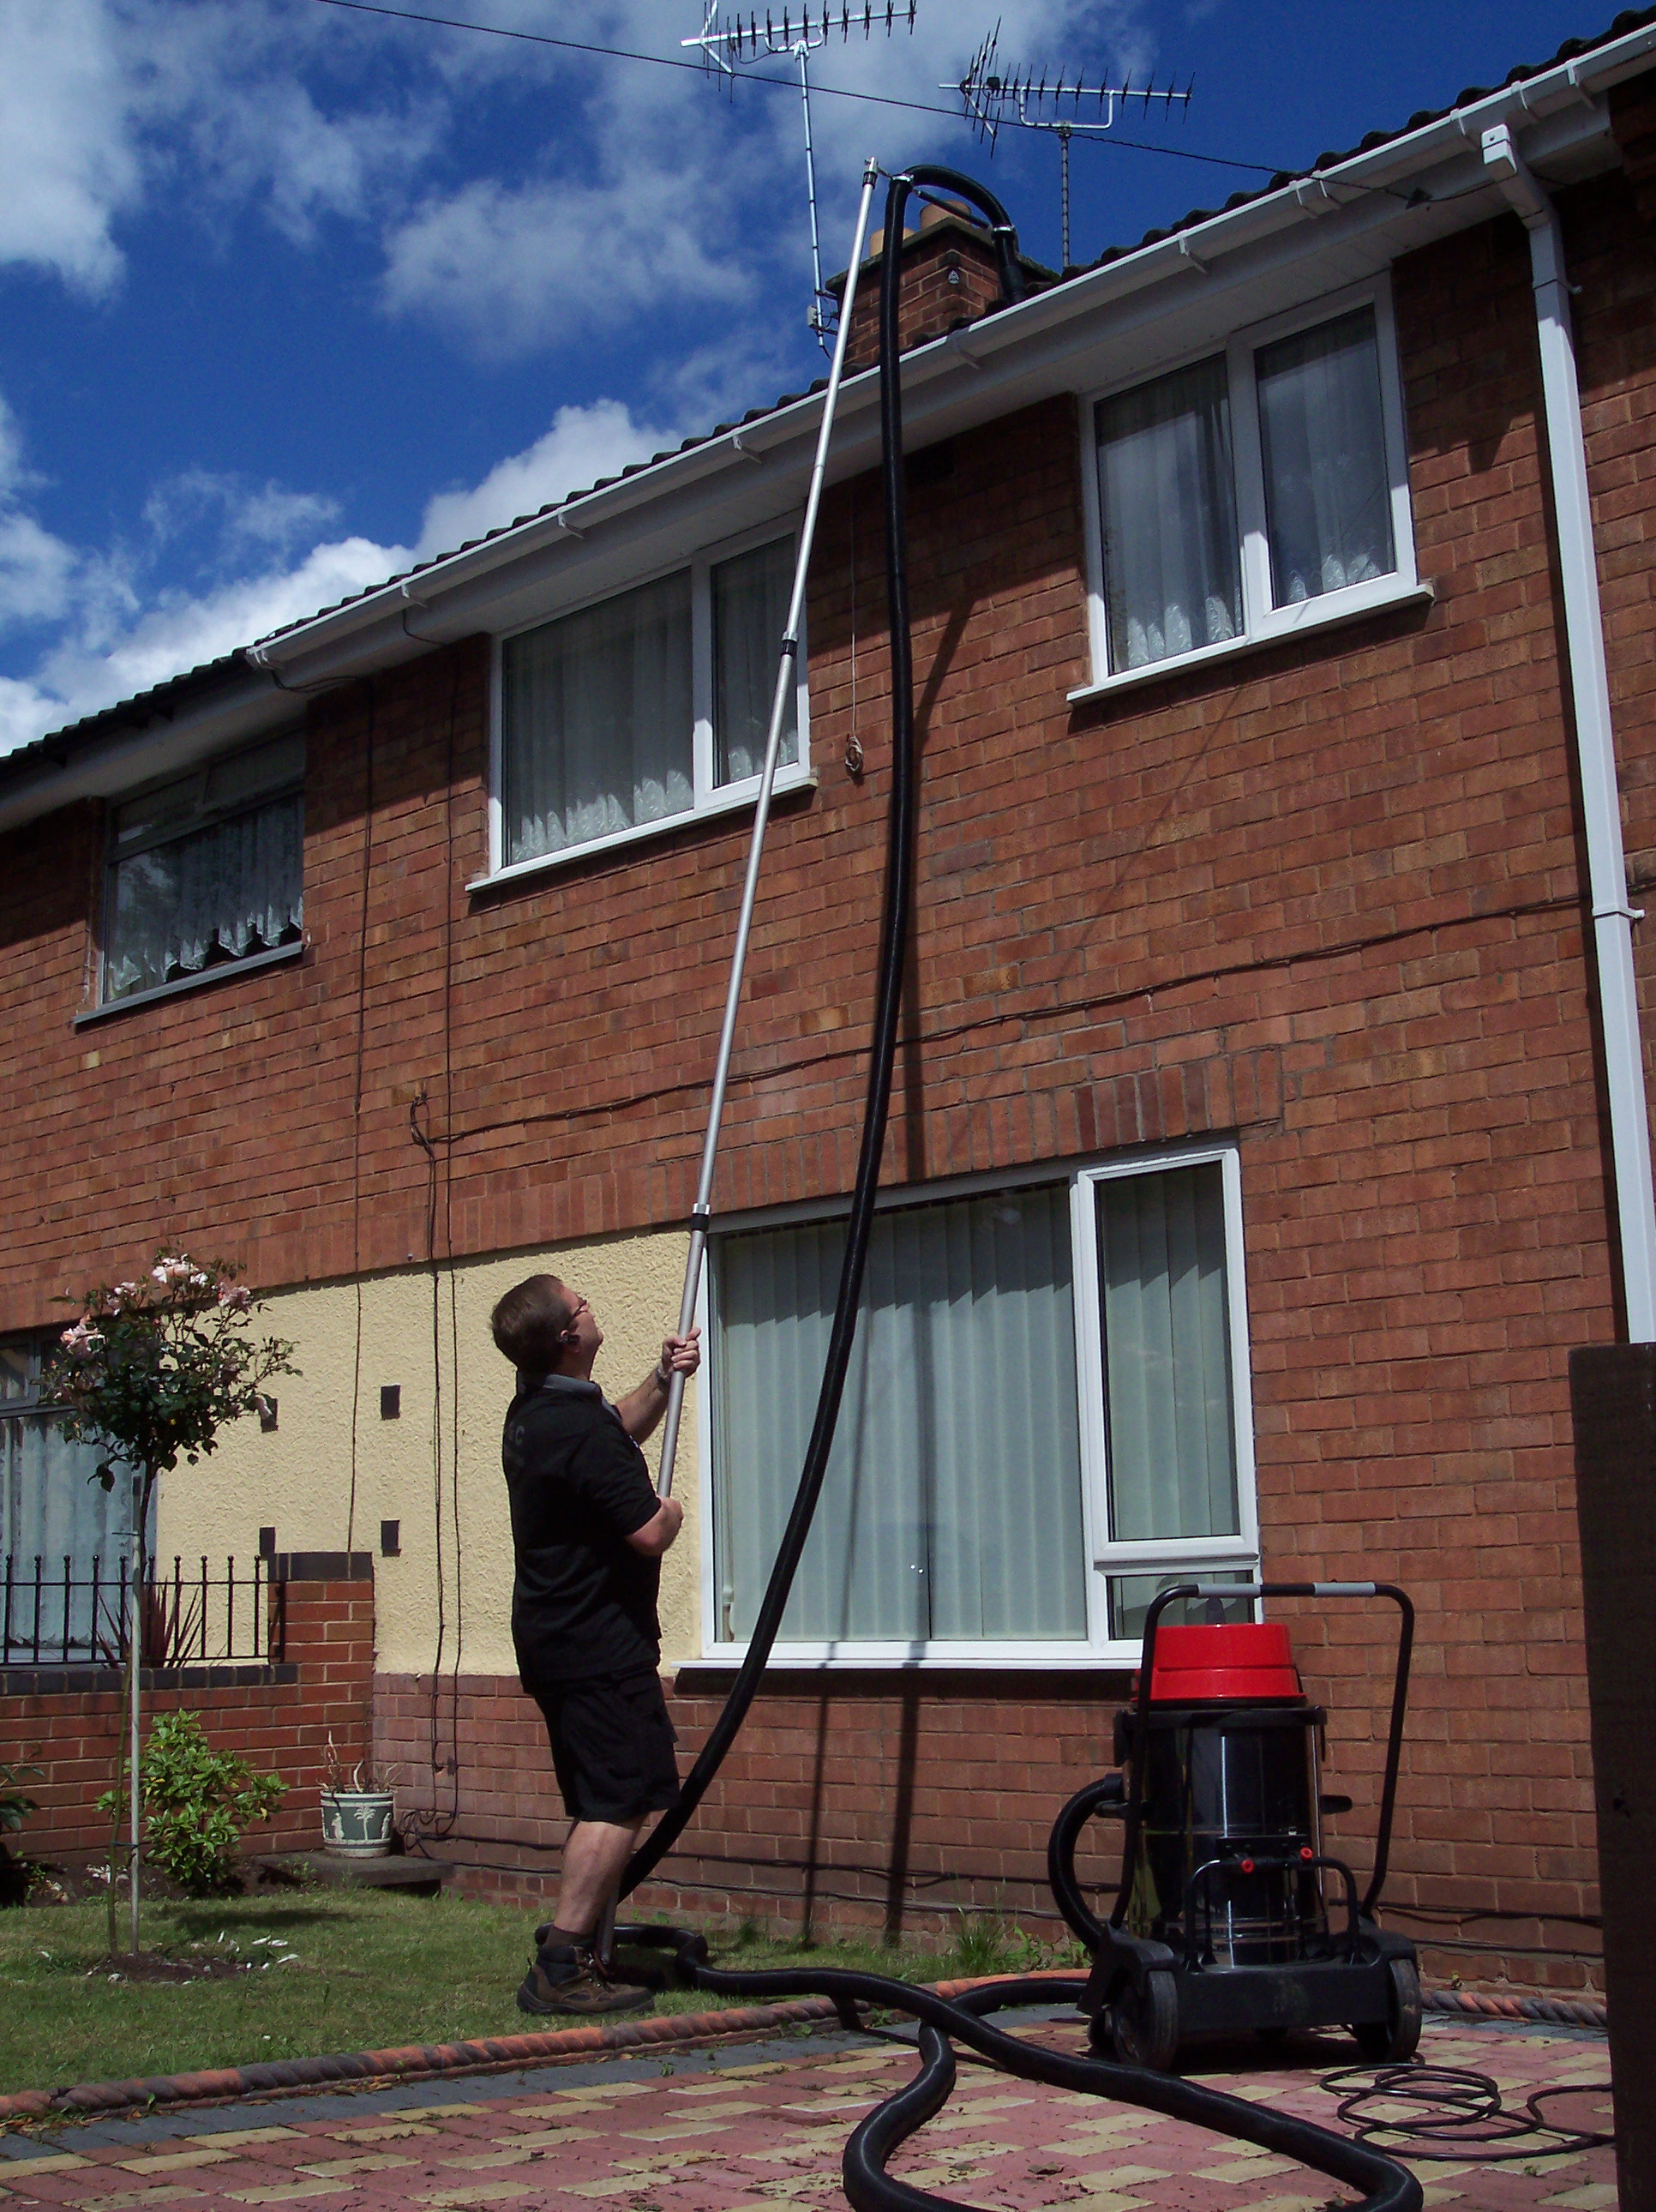 Gutter Cleaning Upper Glass Cleaning Extraordinary Cleaners